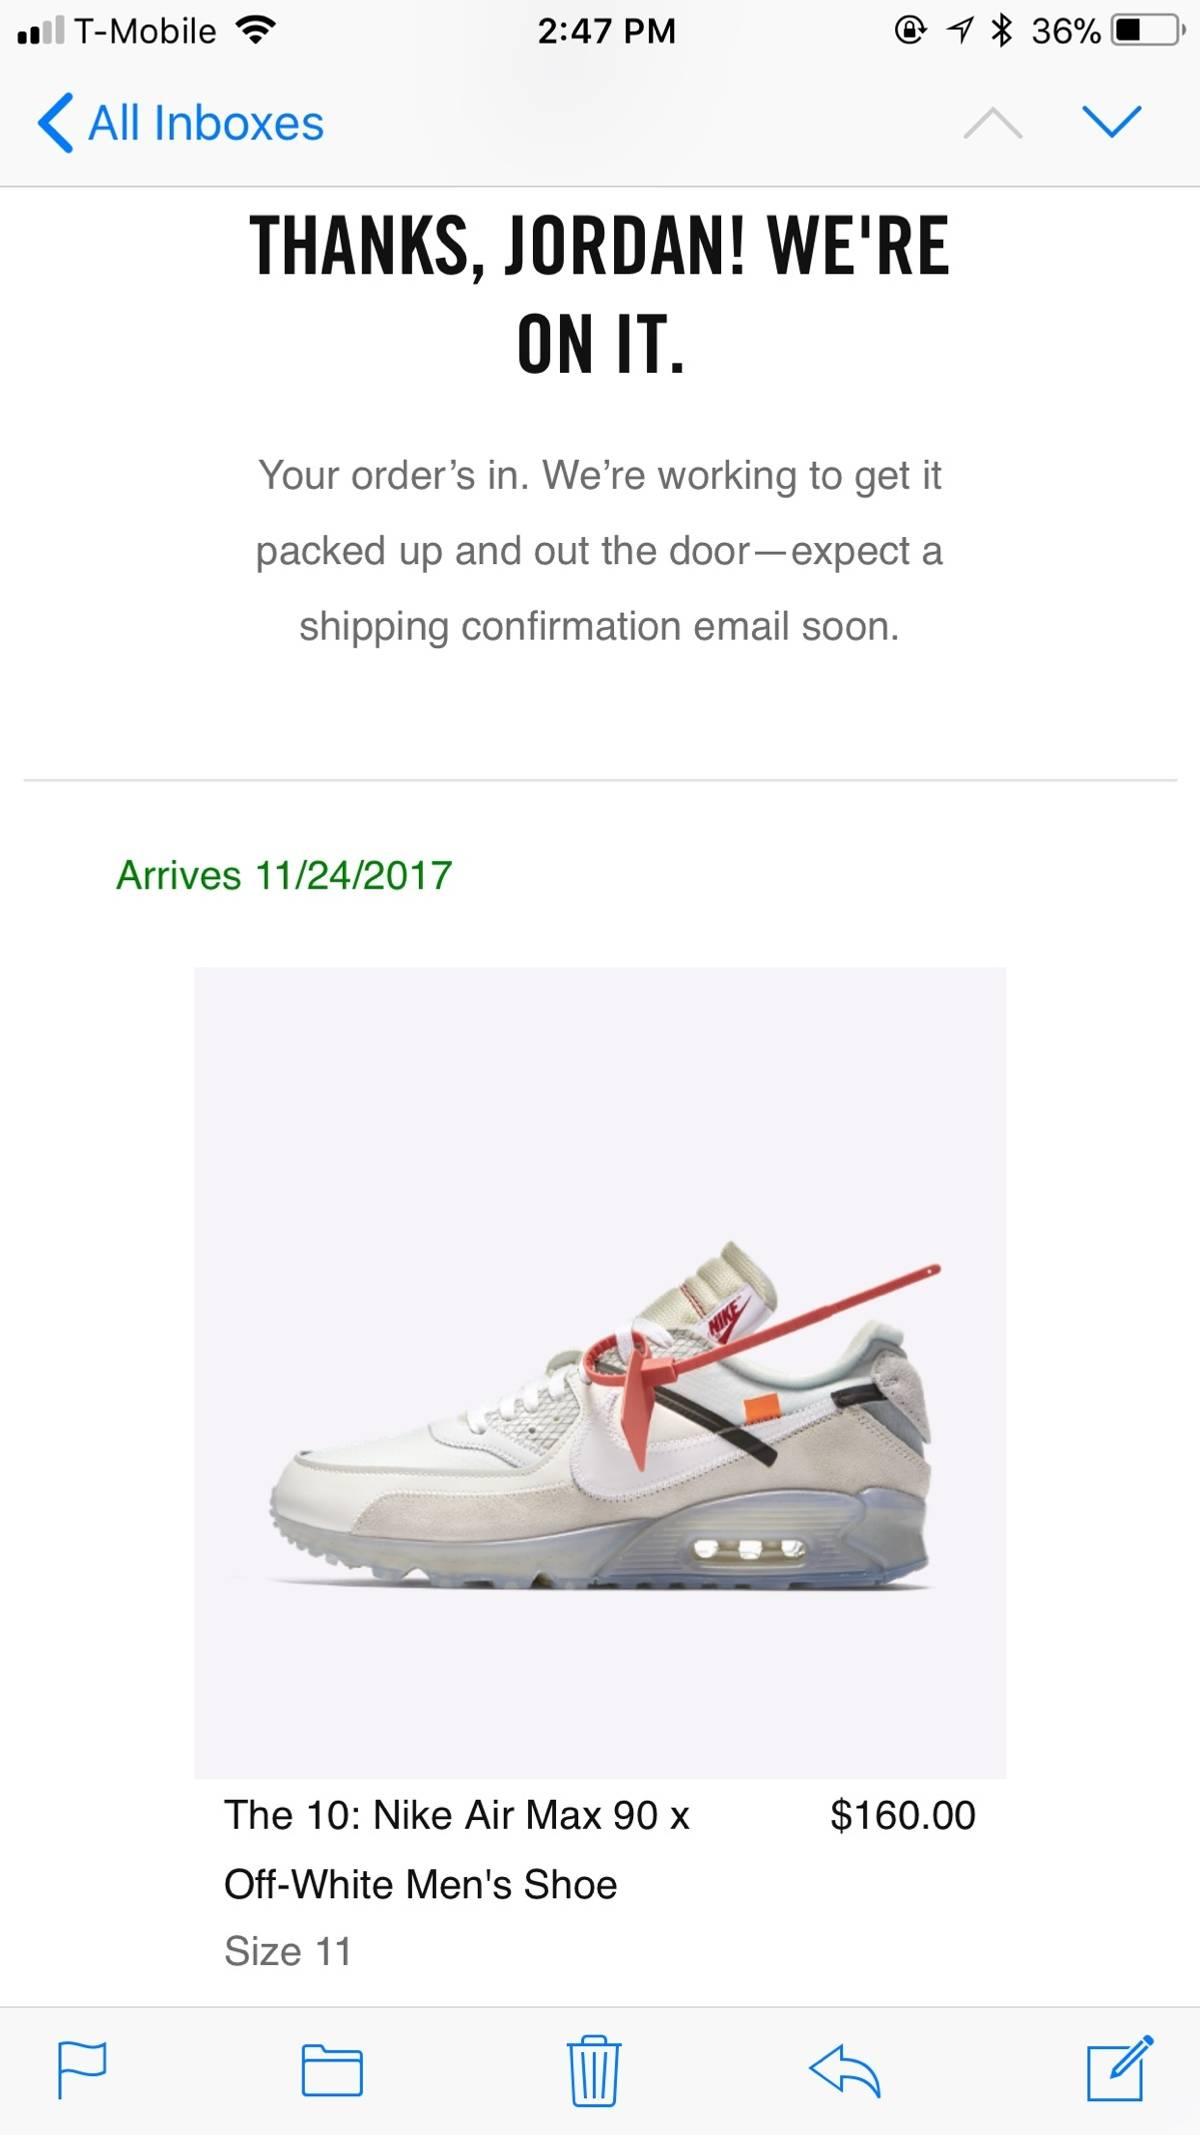 e8b452010dfd Nike Air Max 90 Off White The Ten Size 11 Size 11 - Low-Top Sneakers ...